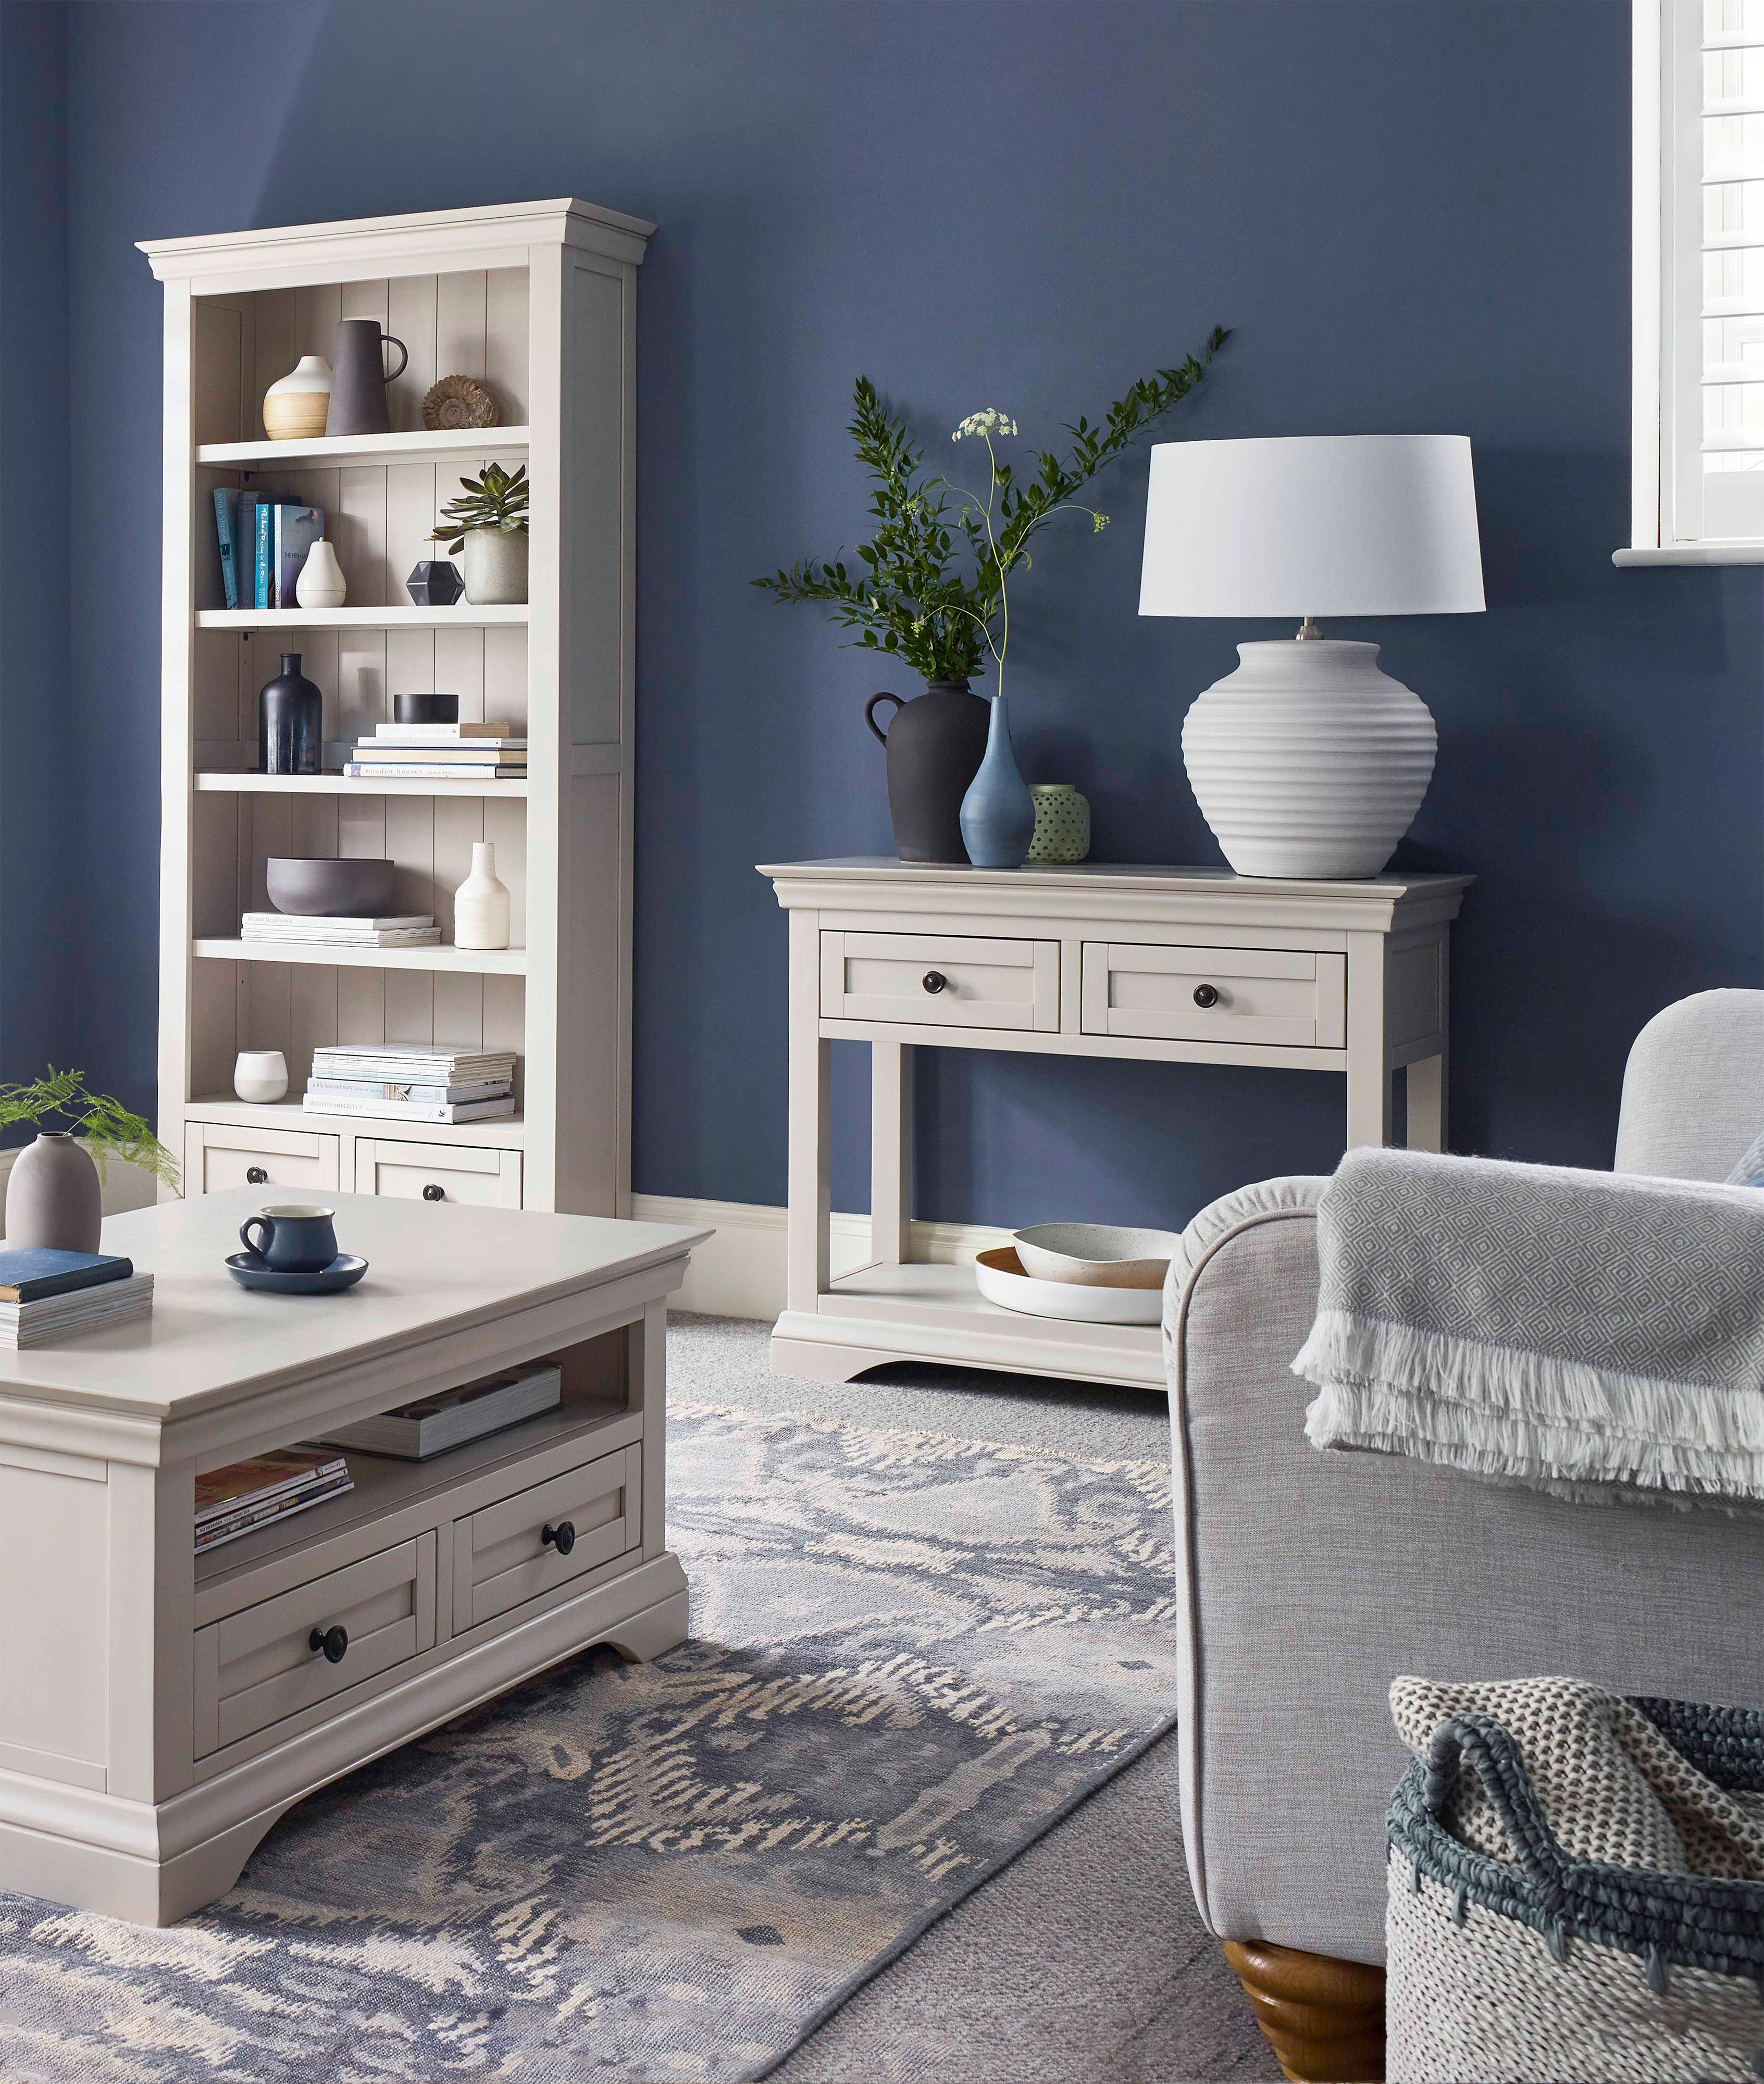 How To Style White And Grey Painted Furniture By Oak Furniture Land The Oak Furniture Land Blog Grey Painted Furniture Furniture Oak Furniture Land